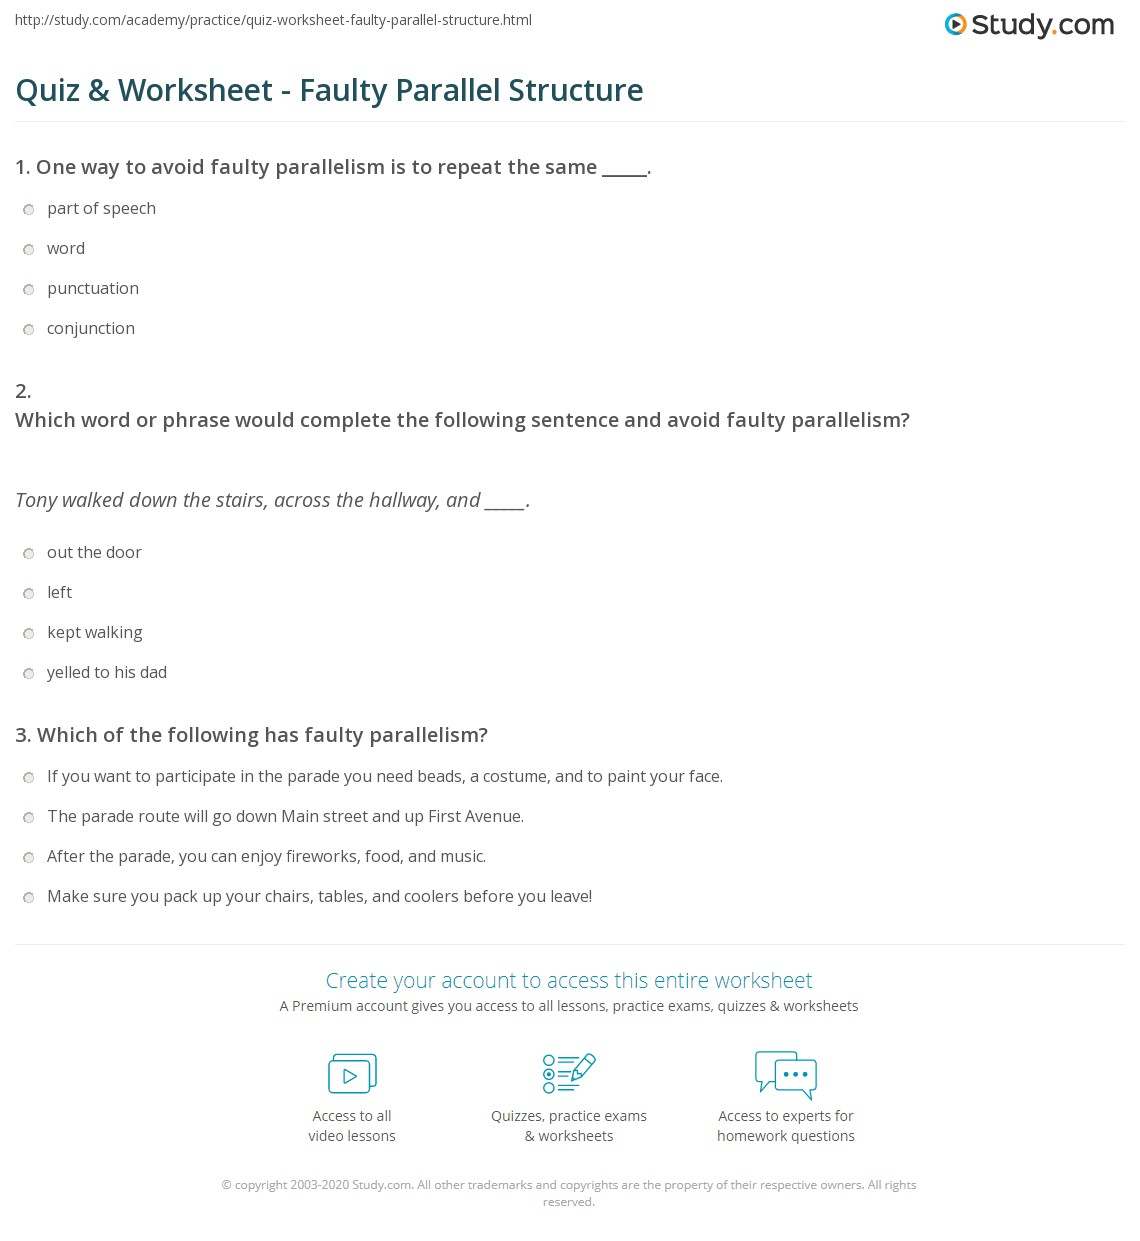 Quiz & Worksheet - Faulty Parallel Structure | Study.com